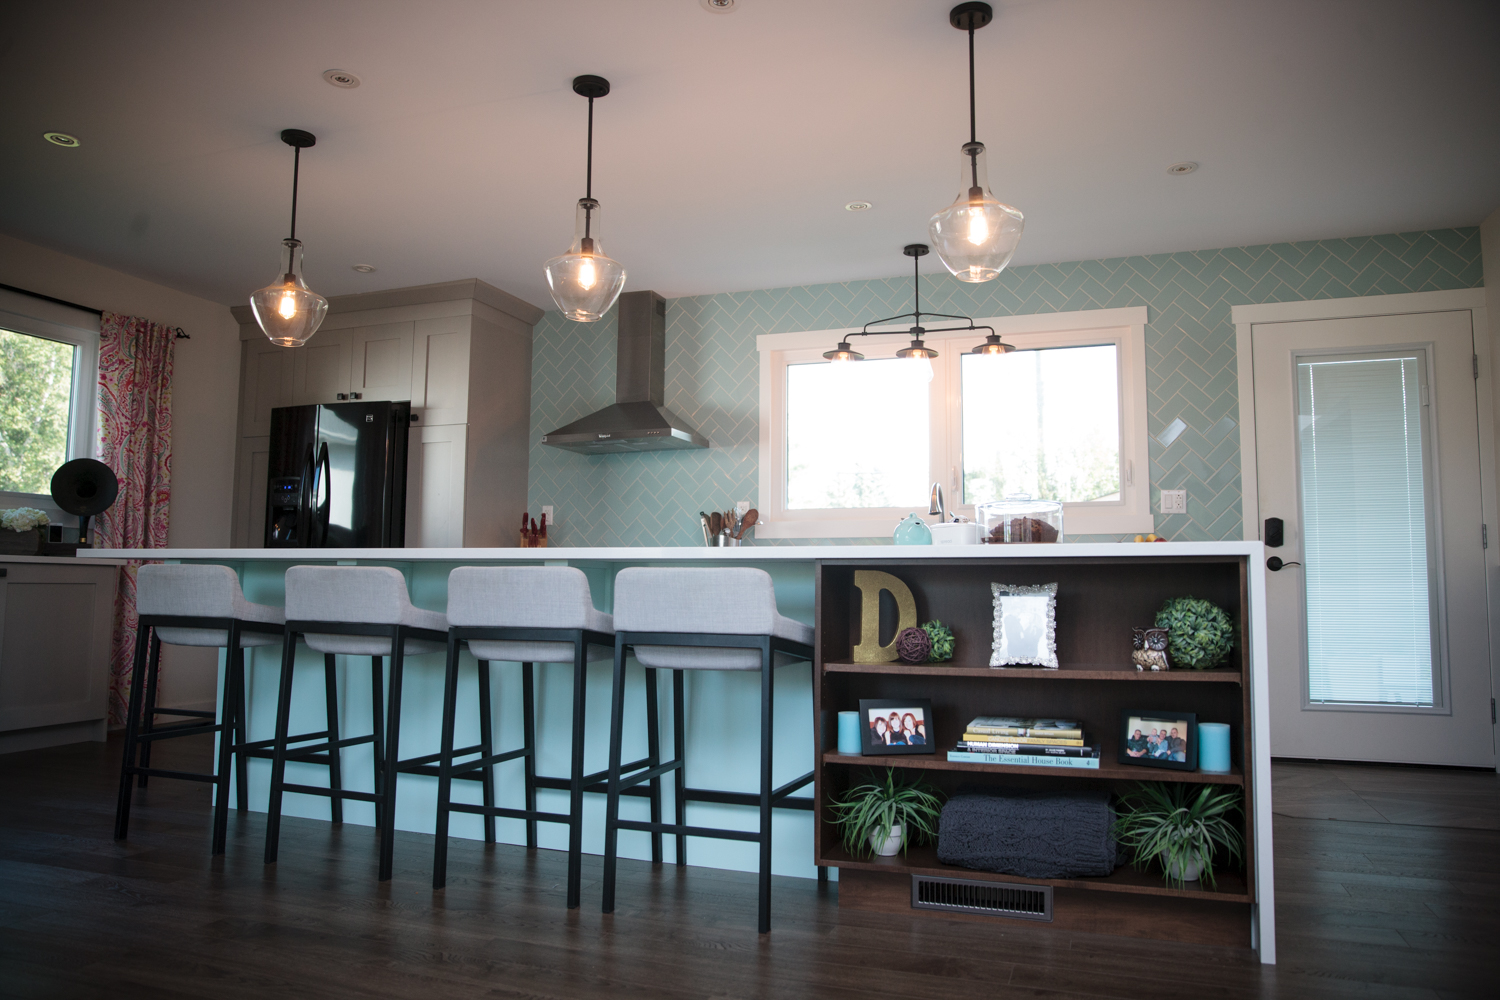 Camrose Kitchen Renovation Locale Designs Interior Design Showroom